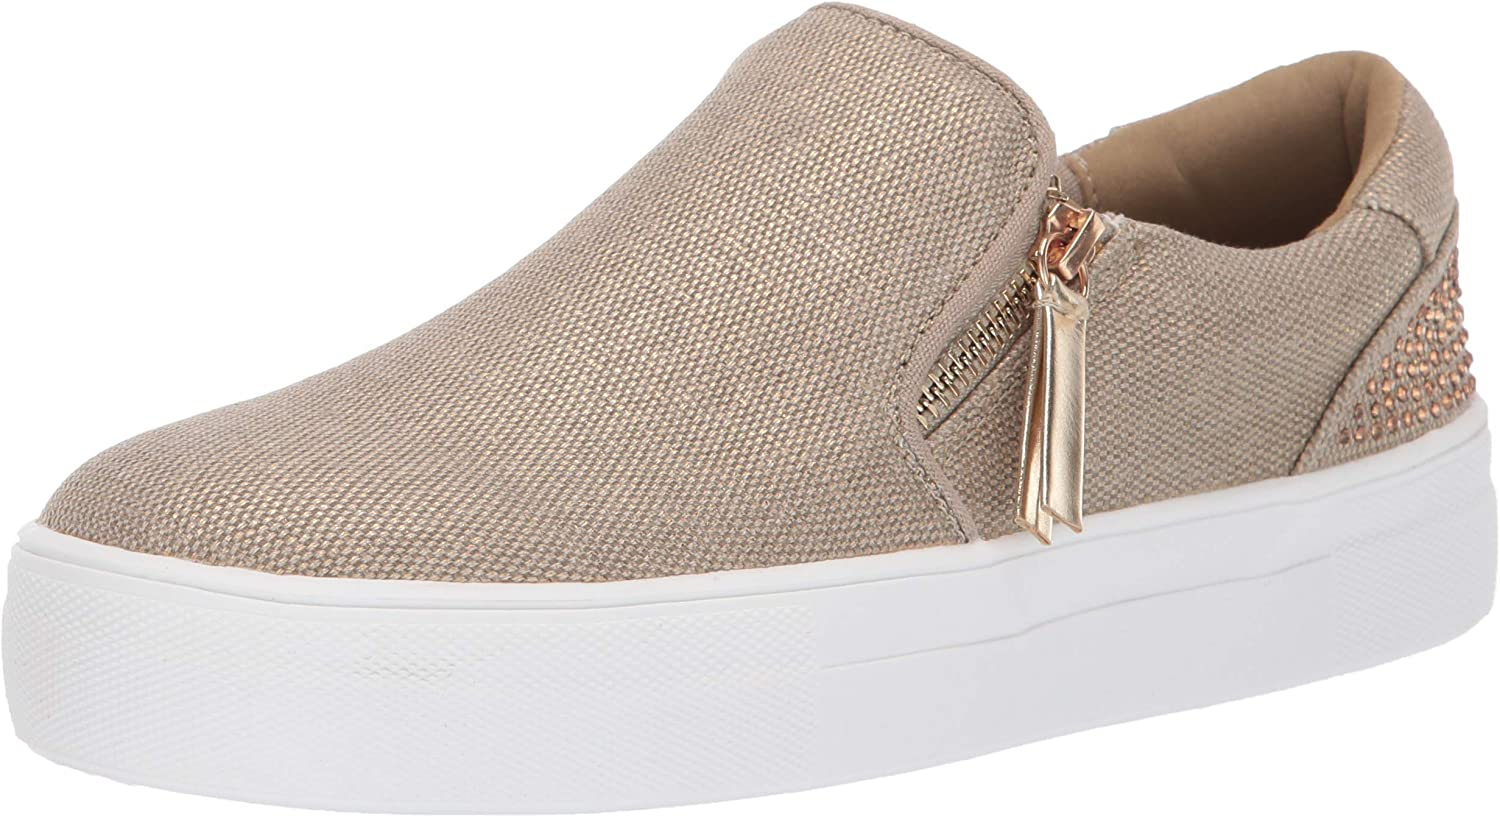 Not Rated Timbre Women's Slip On